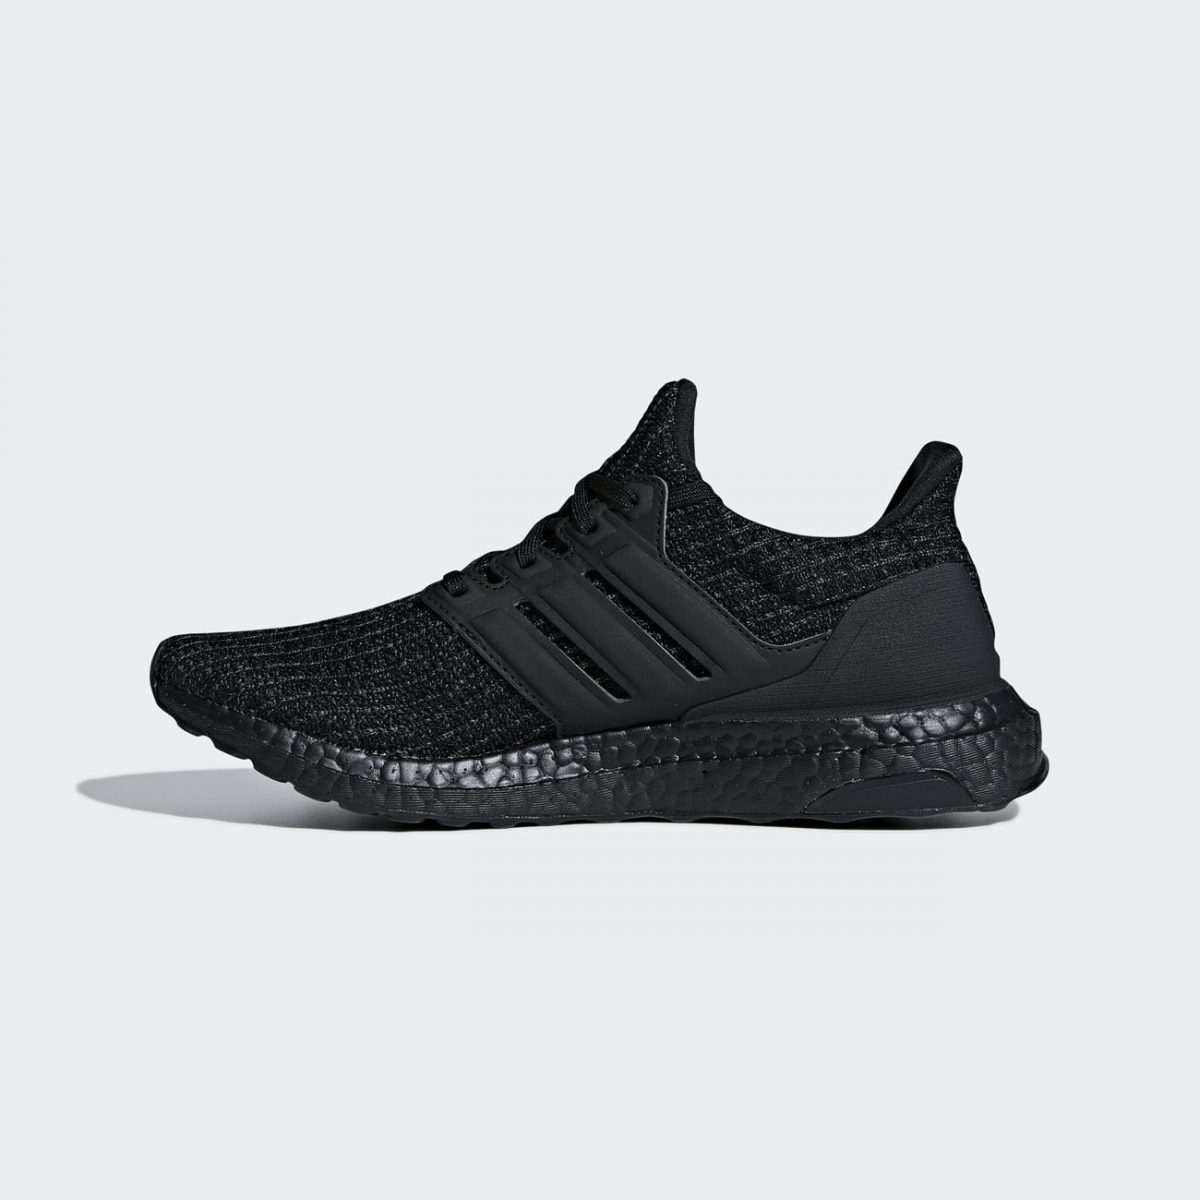 25d278a24c625 The adidas Ultra BOOST